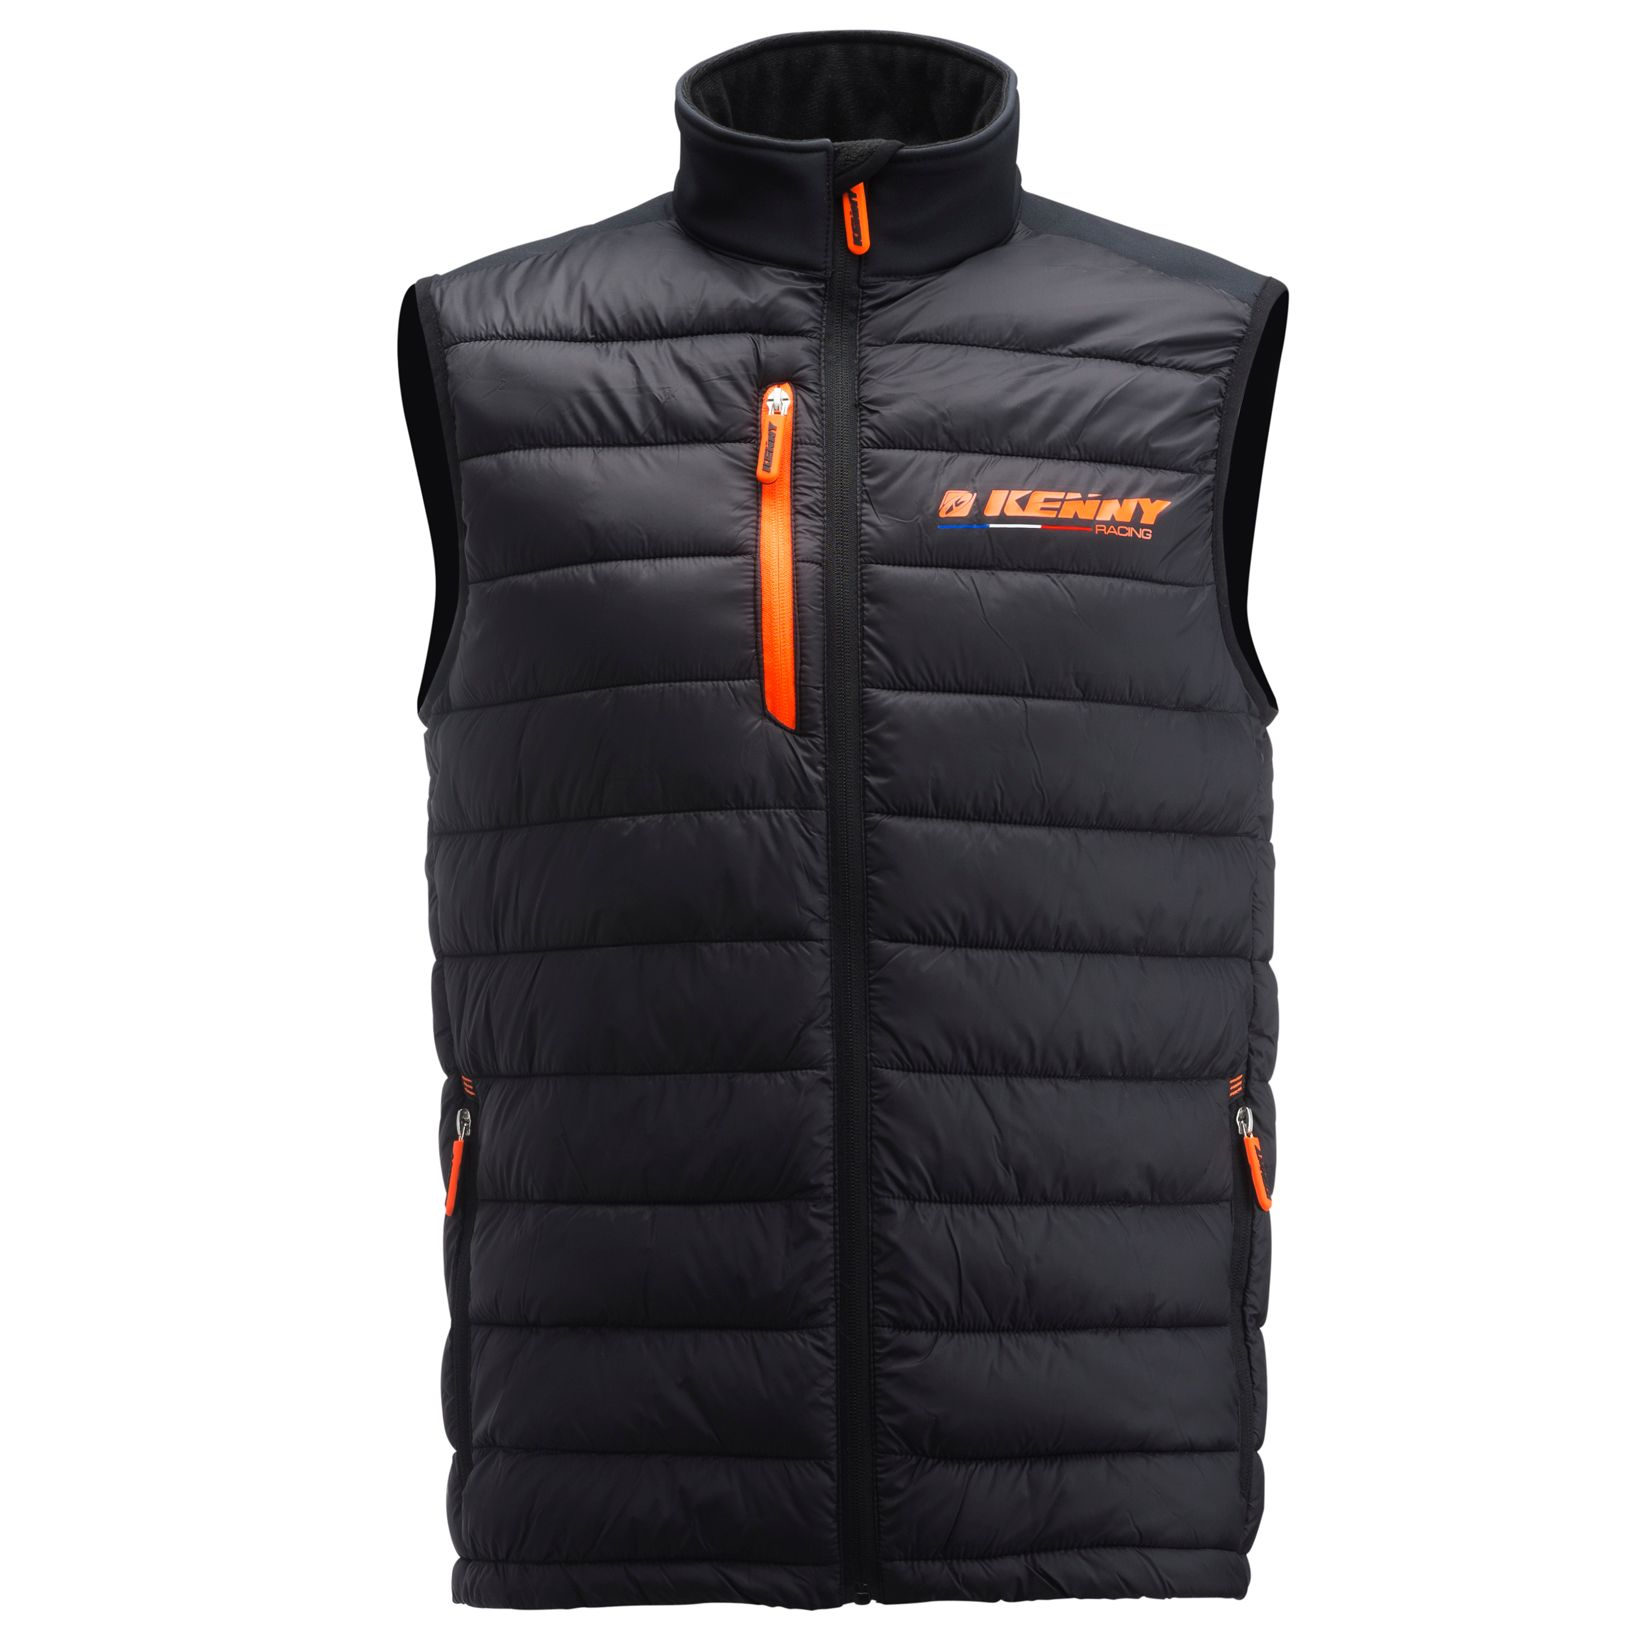 Veste Kenny BODYWARME RACING